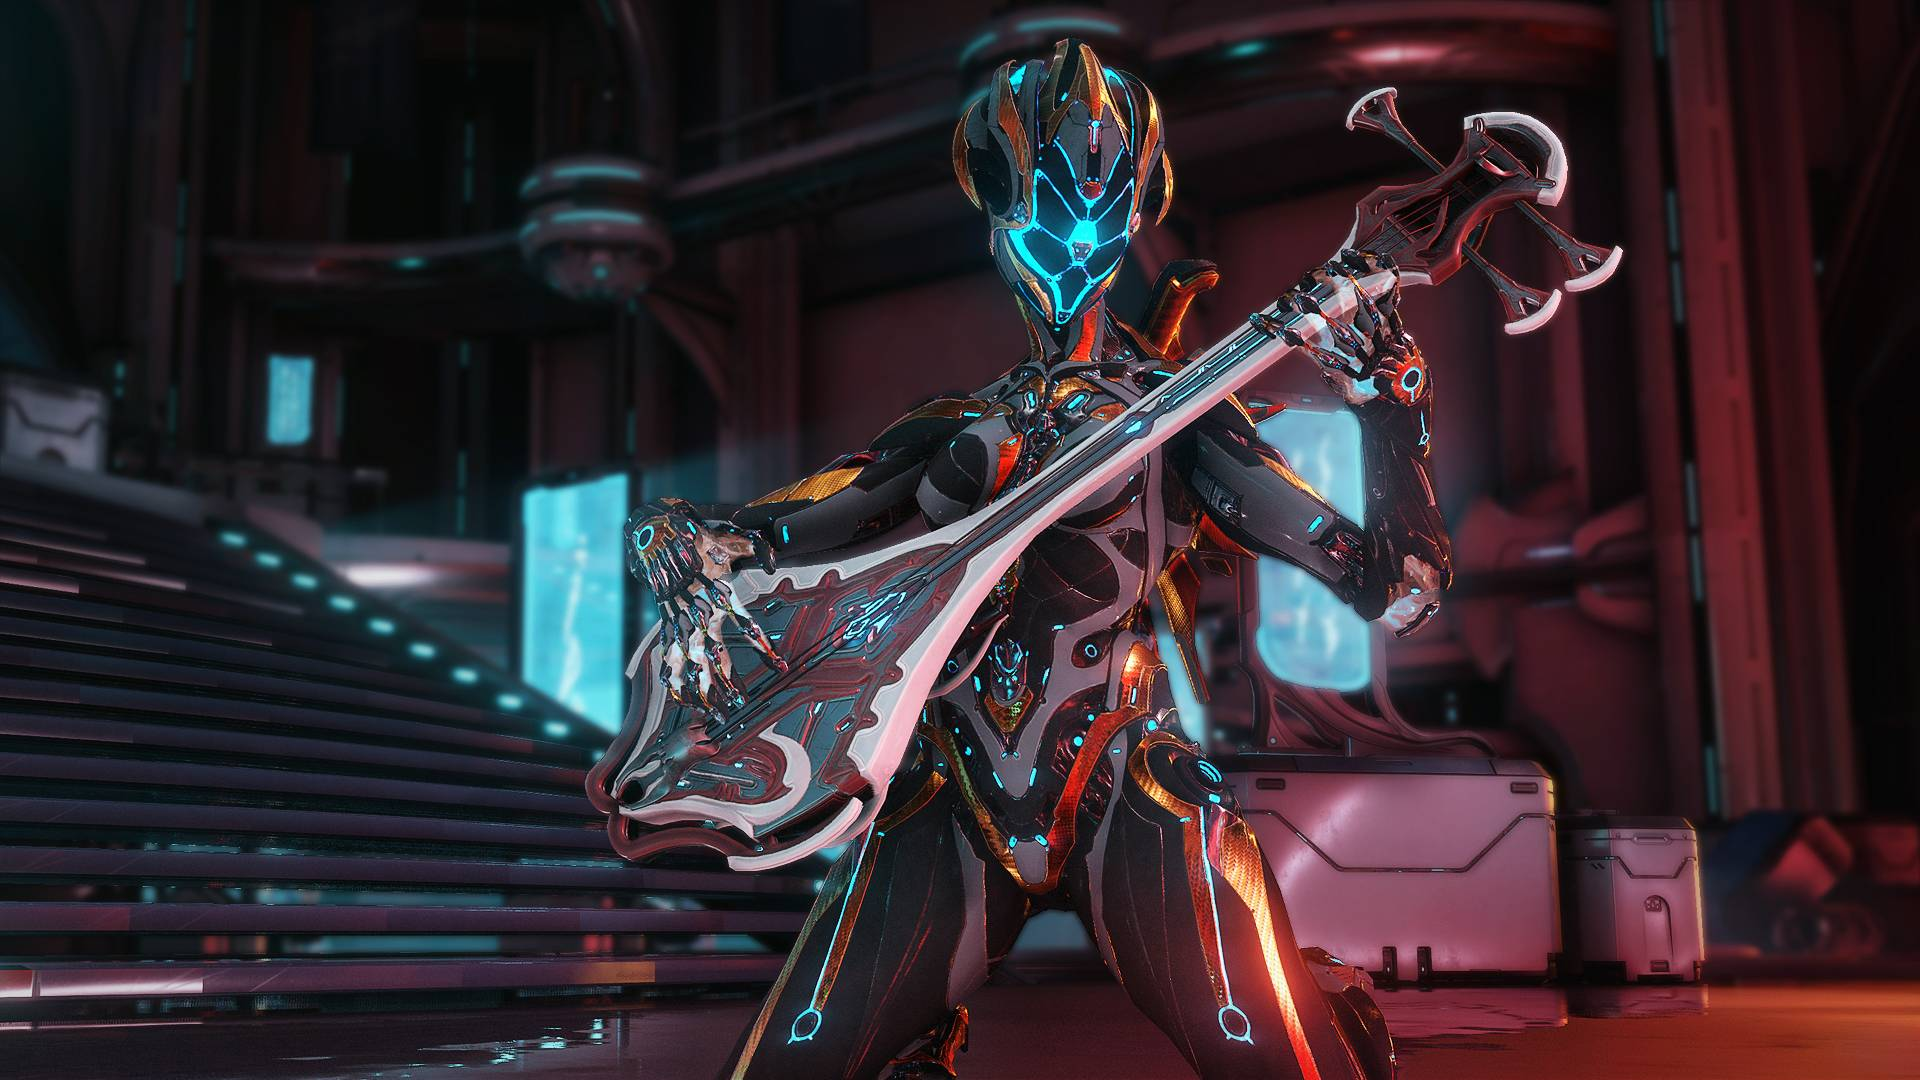 Operation Scarlet Spear 27 3 0 Pc Update Notes Warframe Forums Nova is one of a kind and can do things no other warframe can. warframe forums